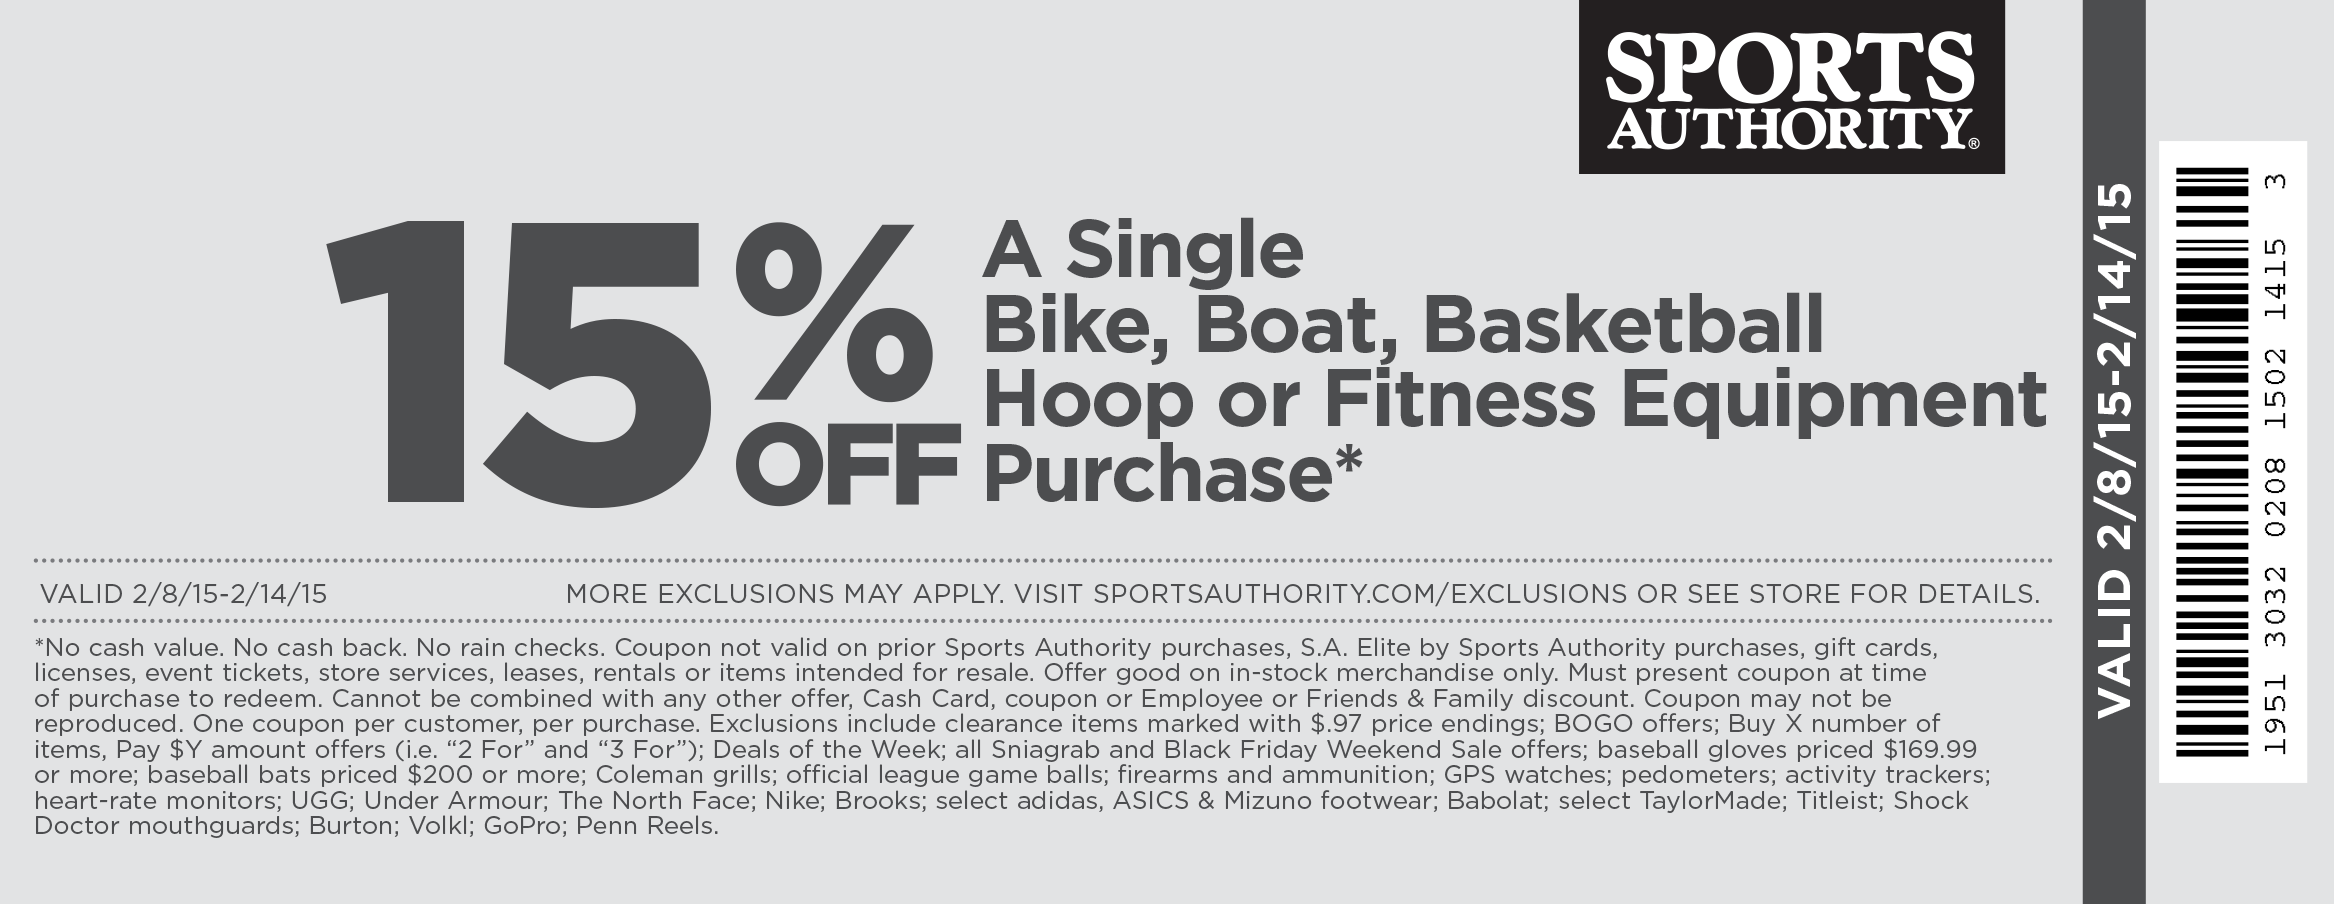 Sports Authority Coupon September 2017 15% off bikes, boats & basketball at Sports Authority, ditto online